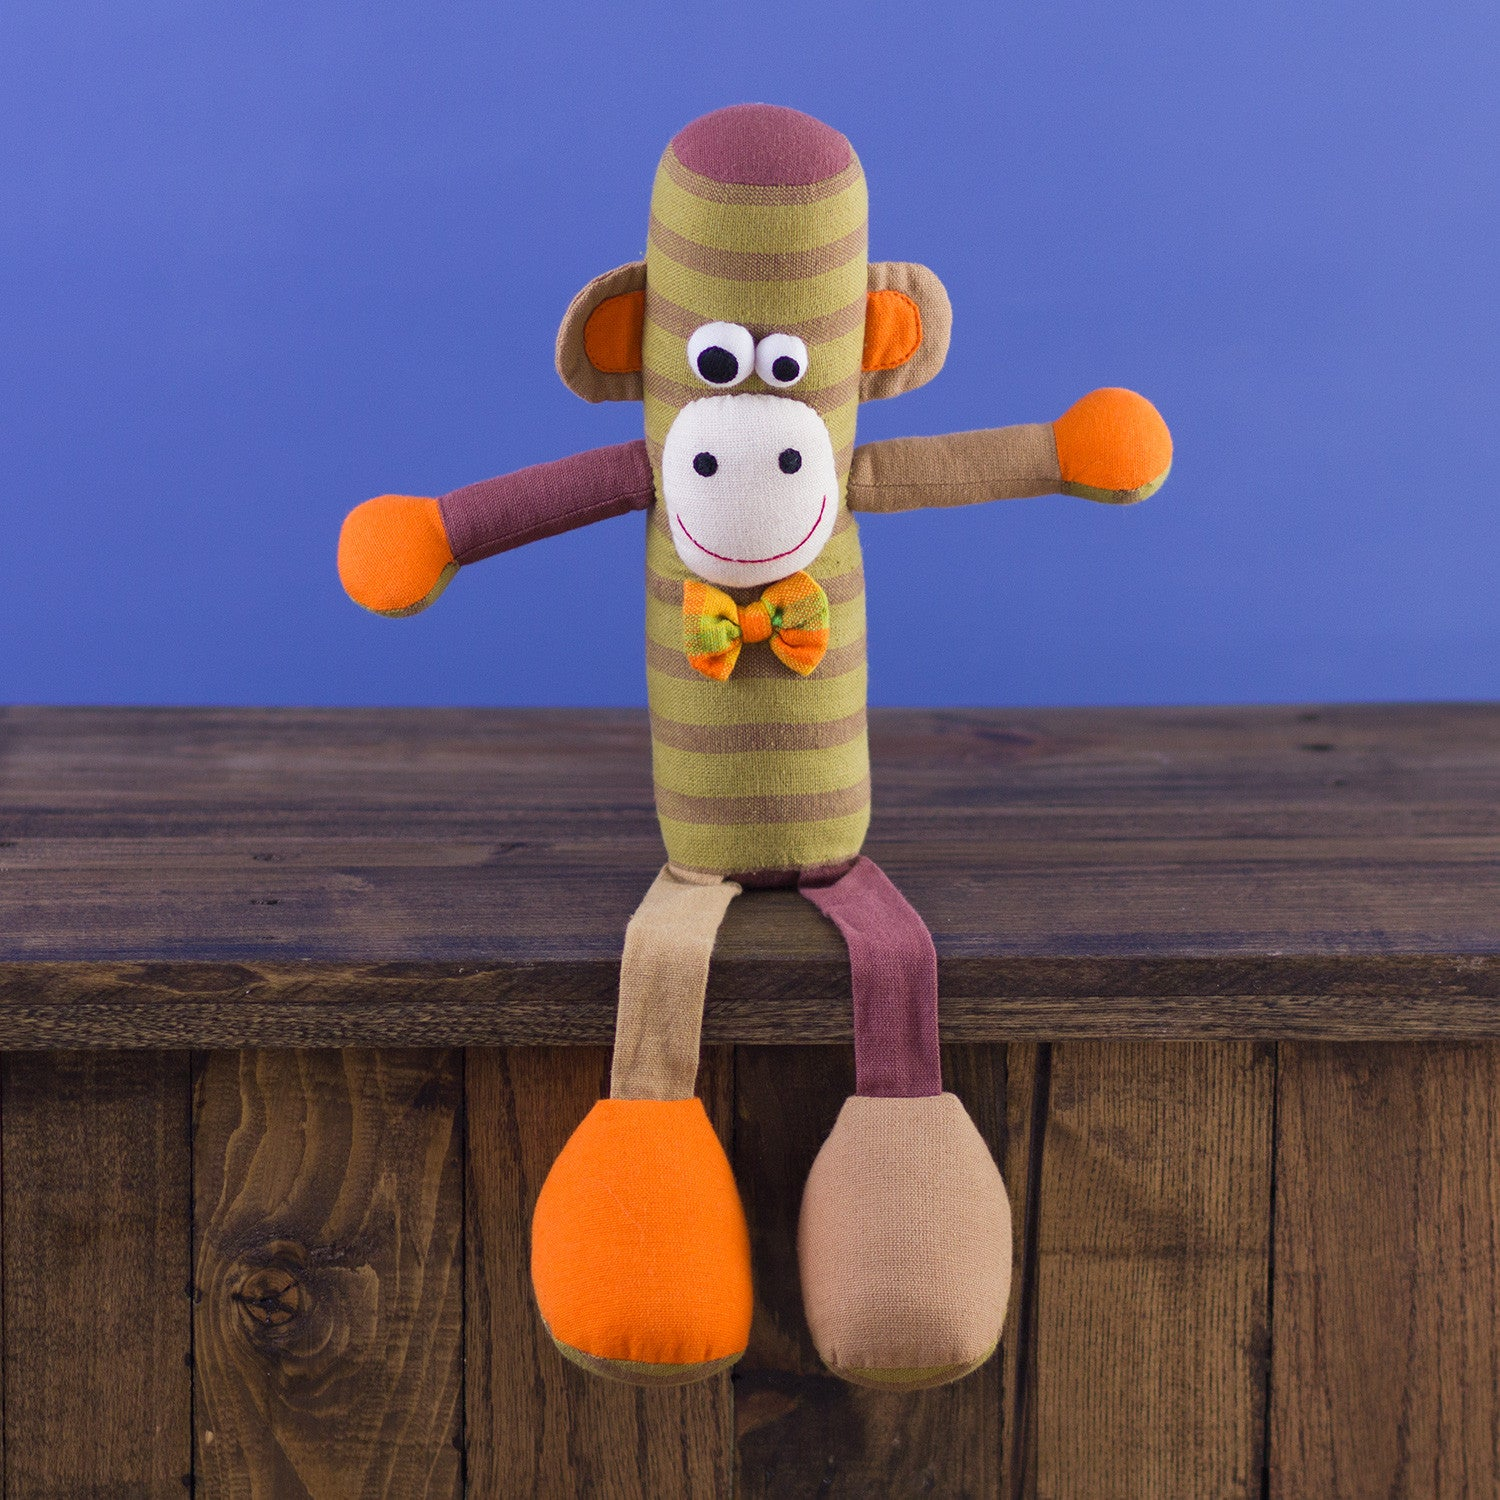 Tube-Shaped Doll Monkey